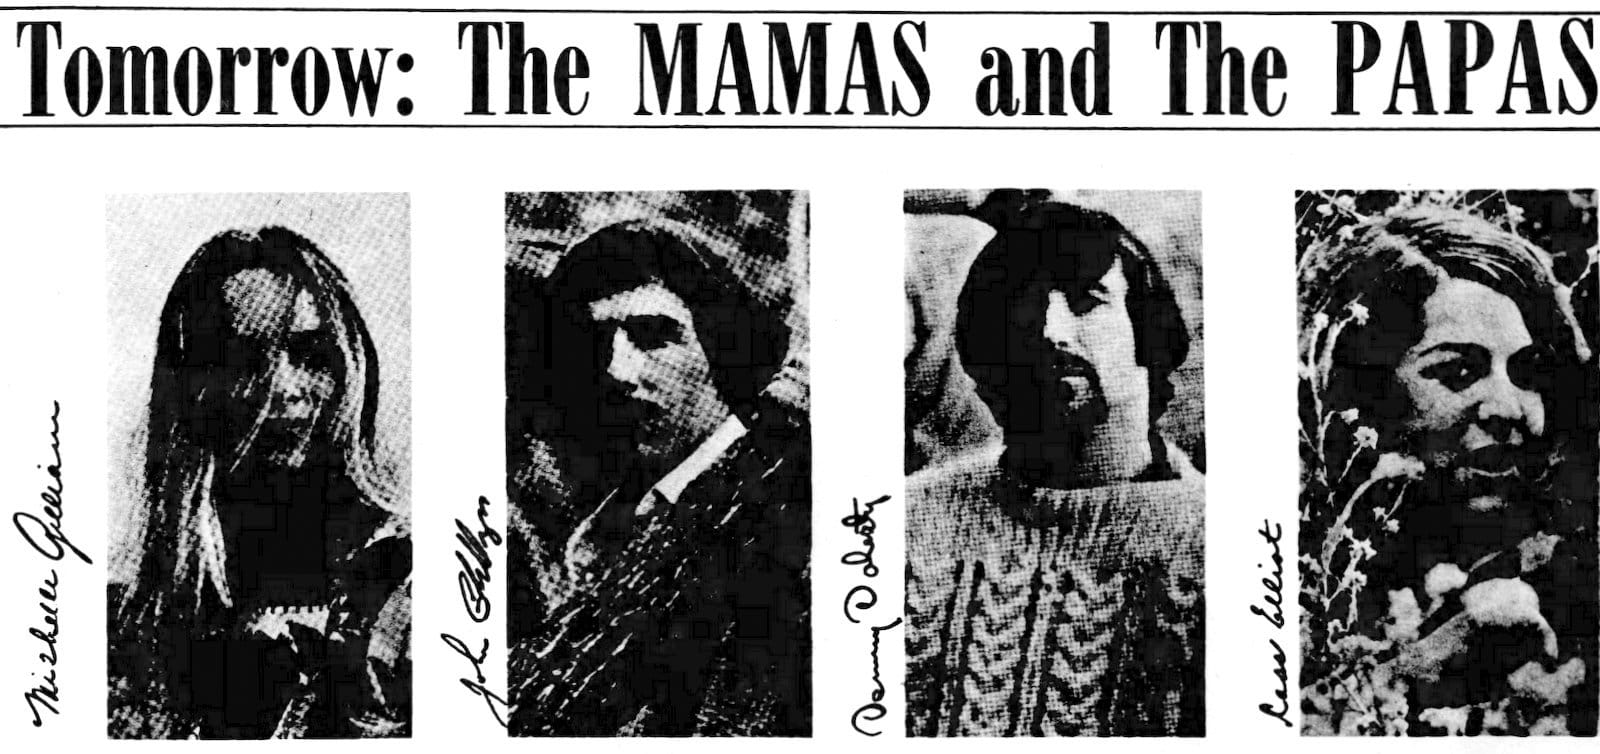 The Mamas & The Papas - Indianapolis concert May 1967